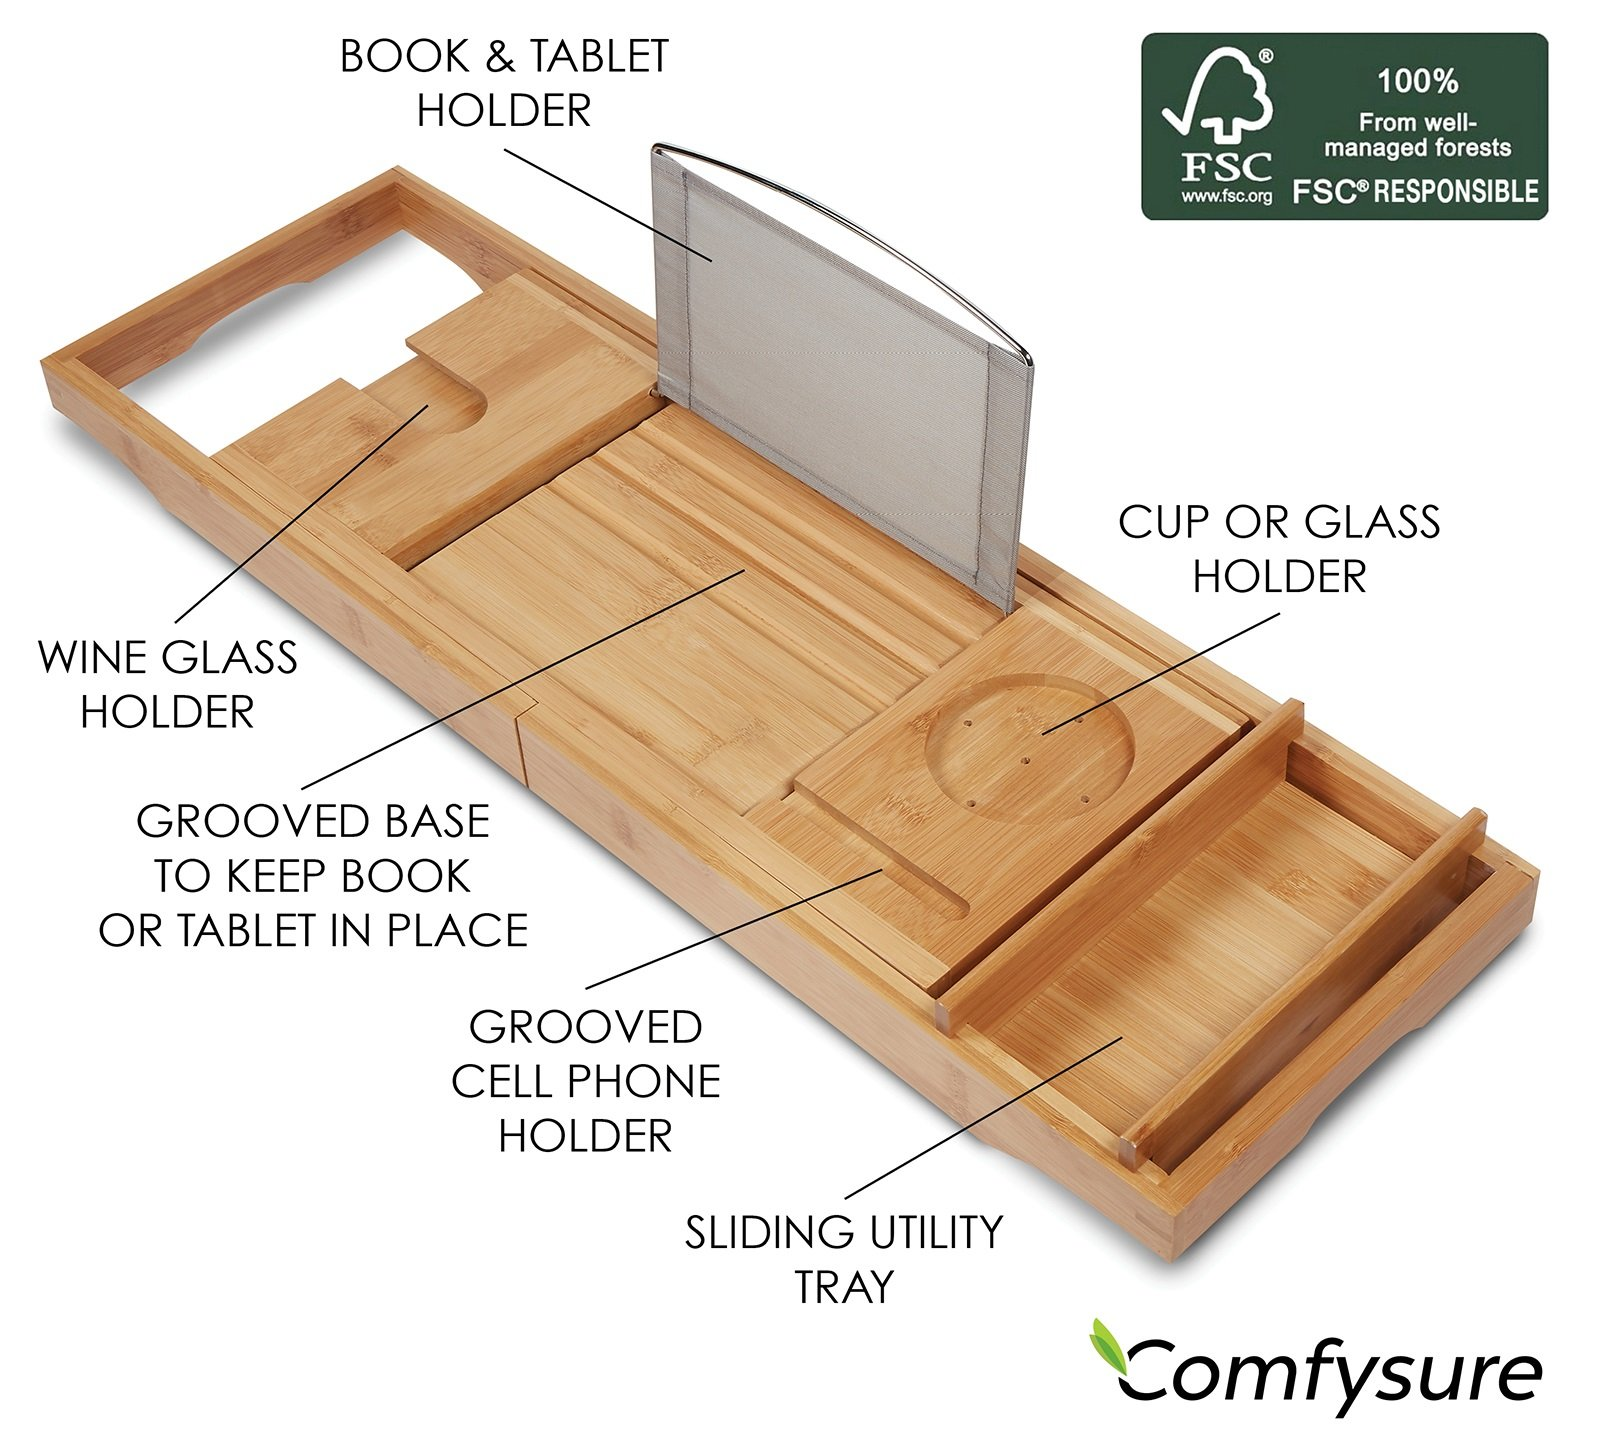 Expandable Bamboo Bathtub Caddy - Adjustable Wooden Serving Tray and Organizer for Any Size Bath Tub - Water Resistant - Phone and Tablet Compartments by ComfySure (Image #4)